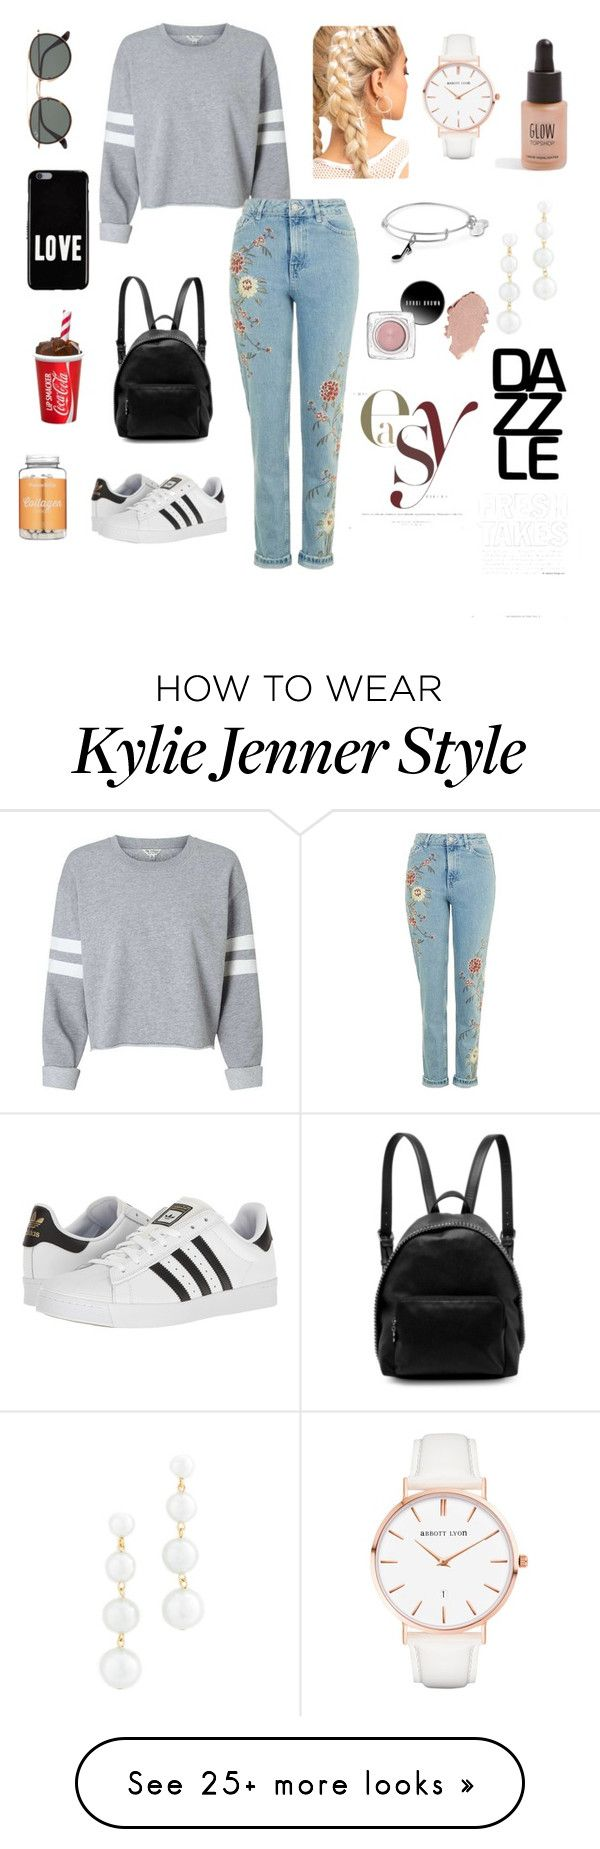 """""""Untitled #282"""" by camila1970 on Polyvore featuring adidas, STELLA McCARTNEY, Ray-Ban, Givenchy, Alex and Ani, Abbott Lyon, Rebecca Minkoff and Topshop"""